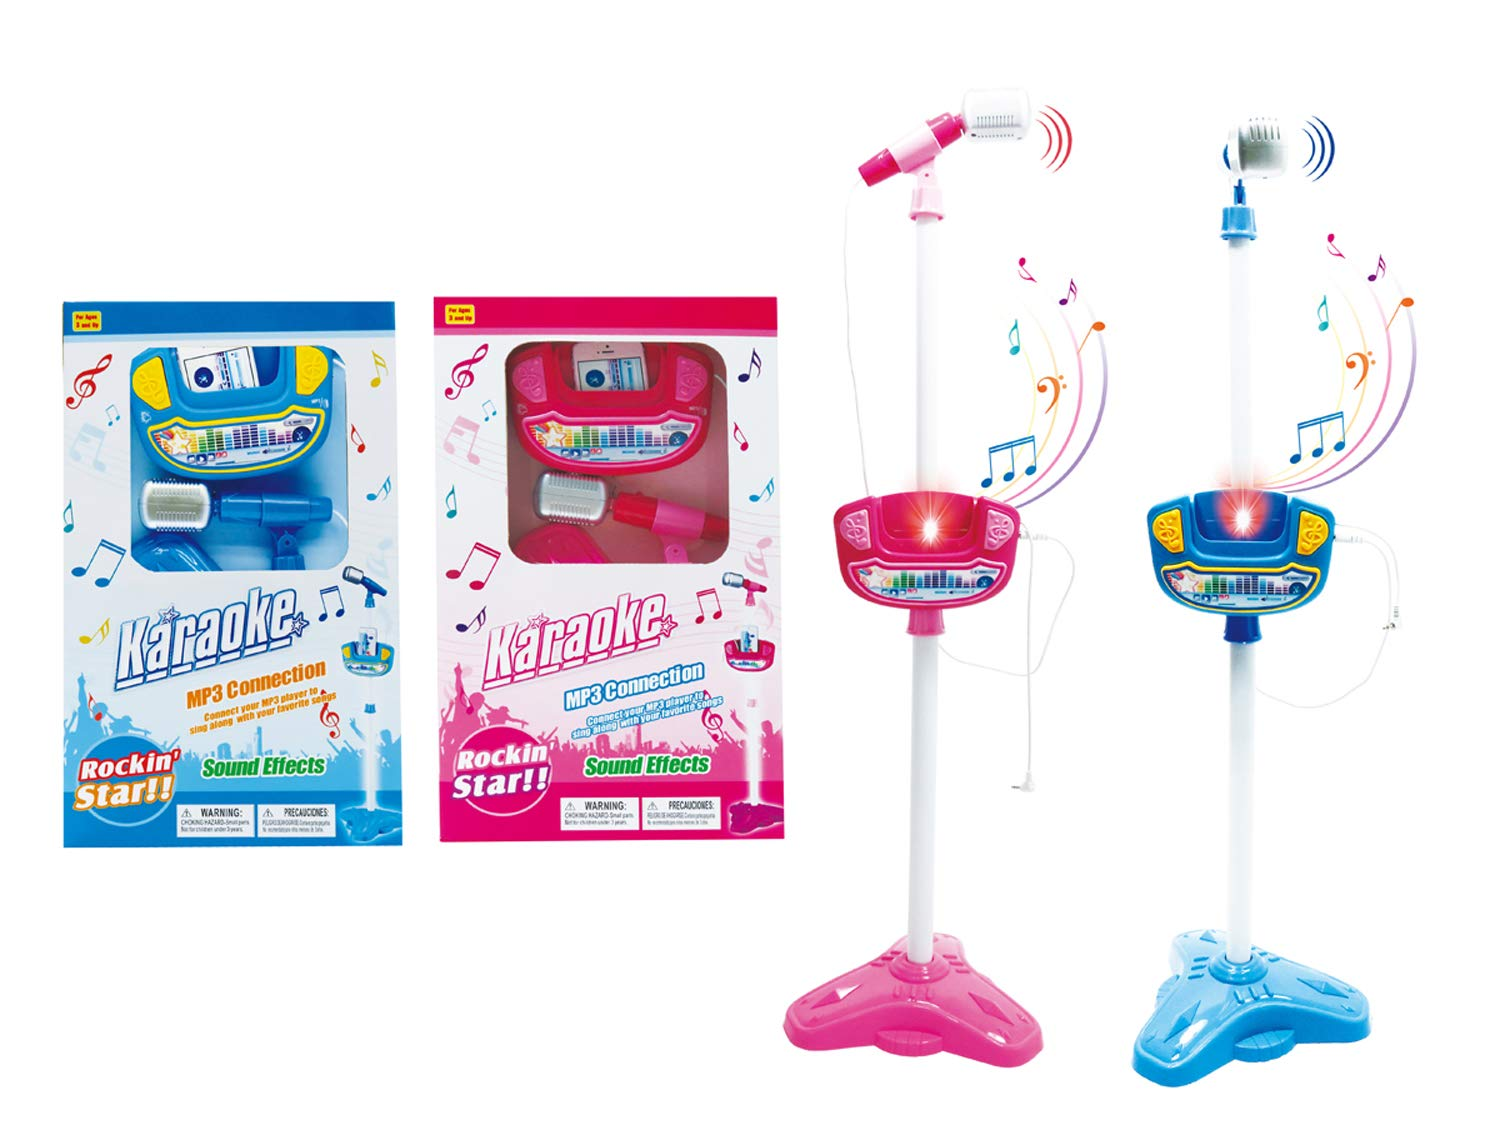 Papa N Me Store Music Function & Flashing Lights Child's Karaoke -Children's Toy Stand Up Microphone Play Set w/ Built-in MP3 Player, Speaker, Adjustable Height-1 Set